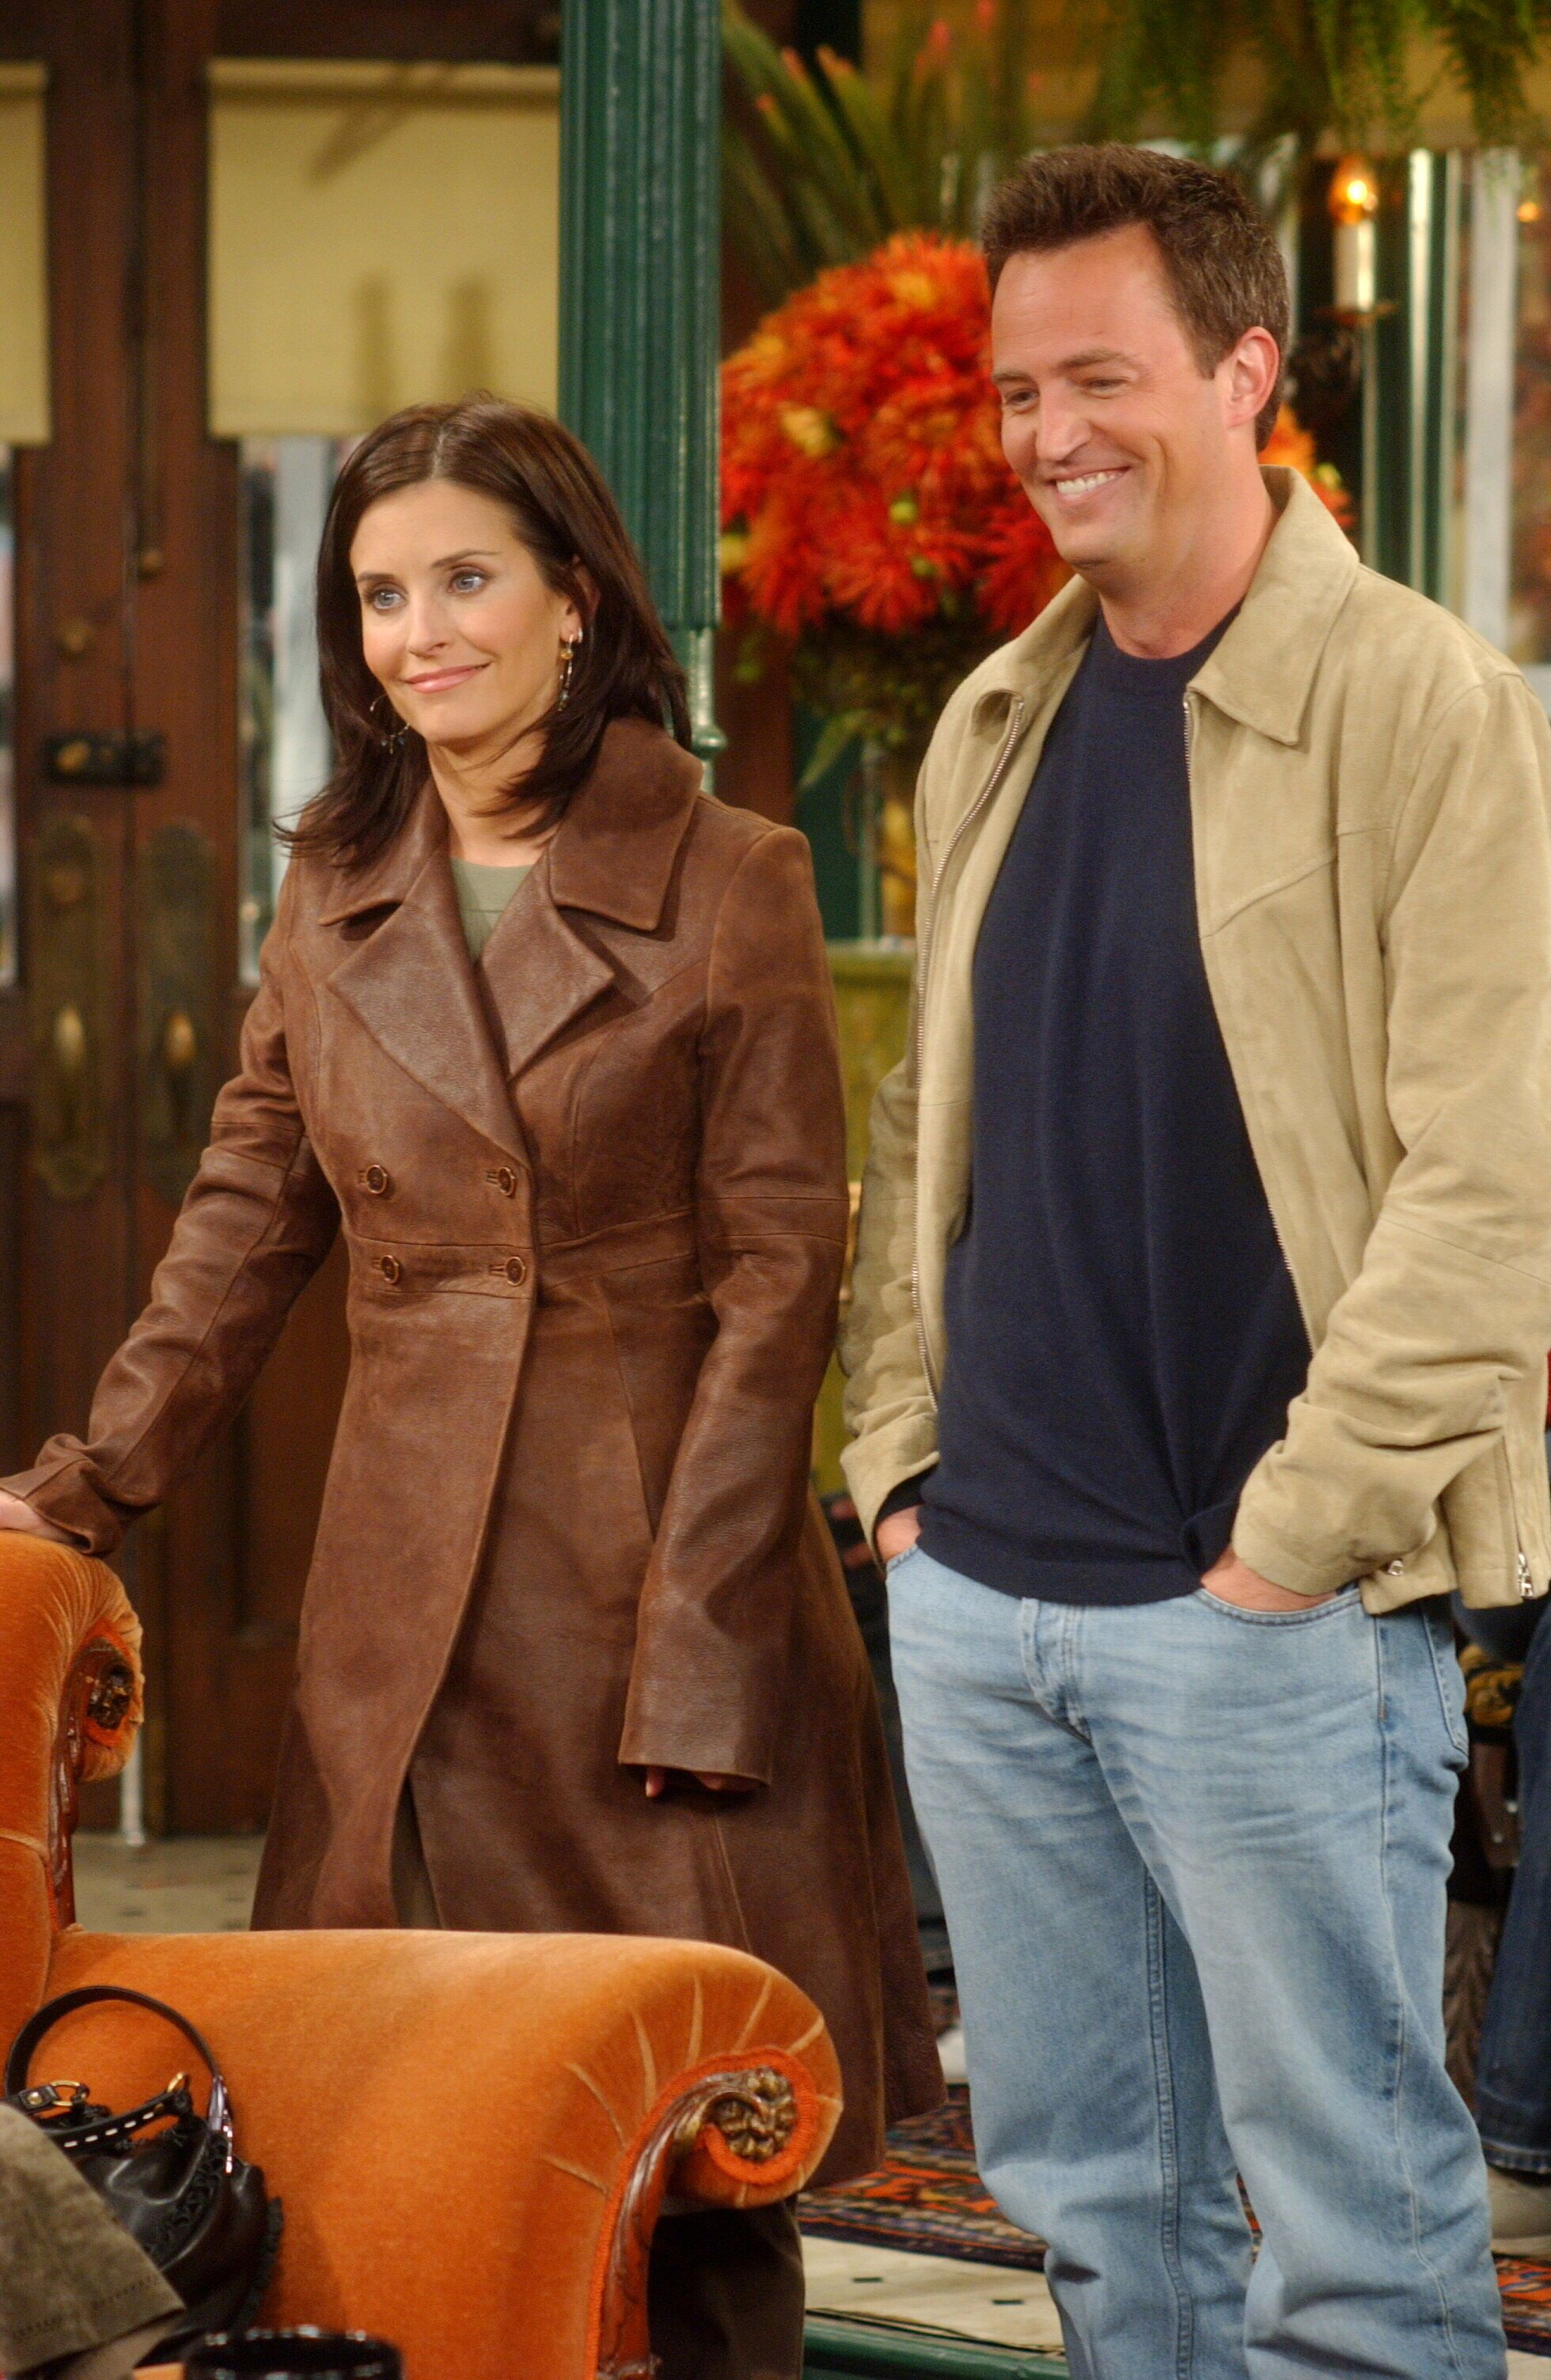 Friends Episode Stills Season 10 Episode 9 The One With The